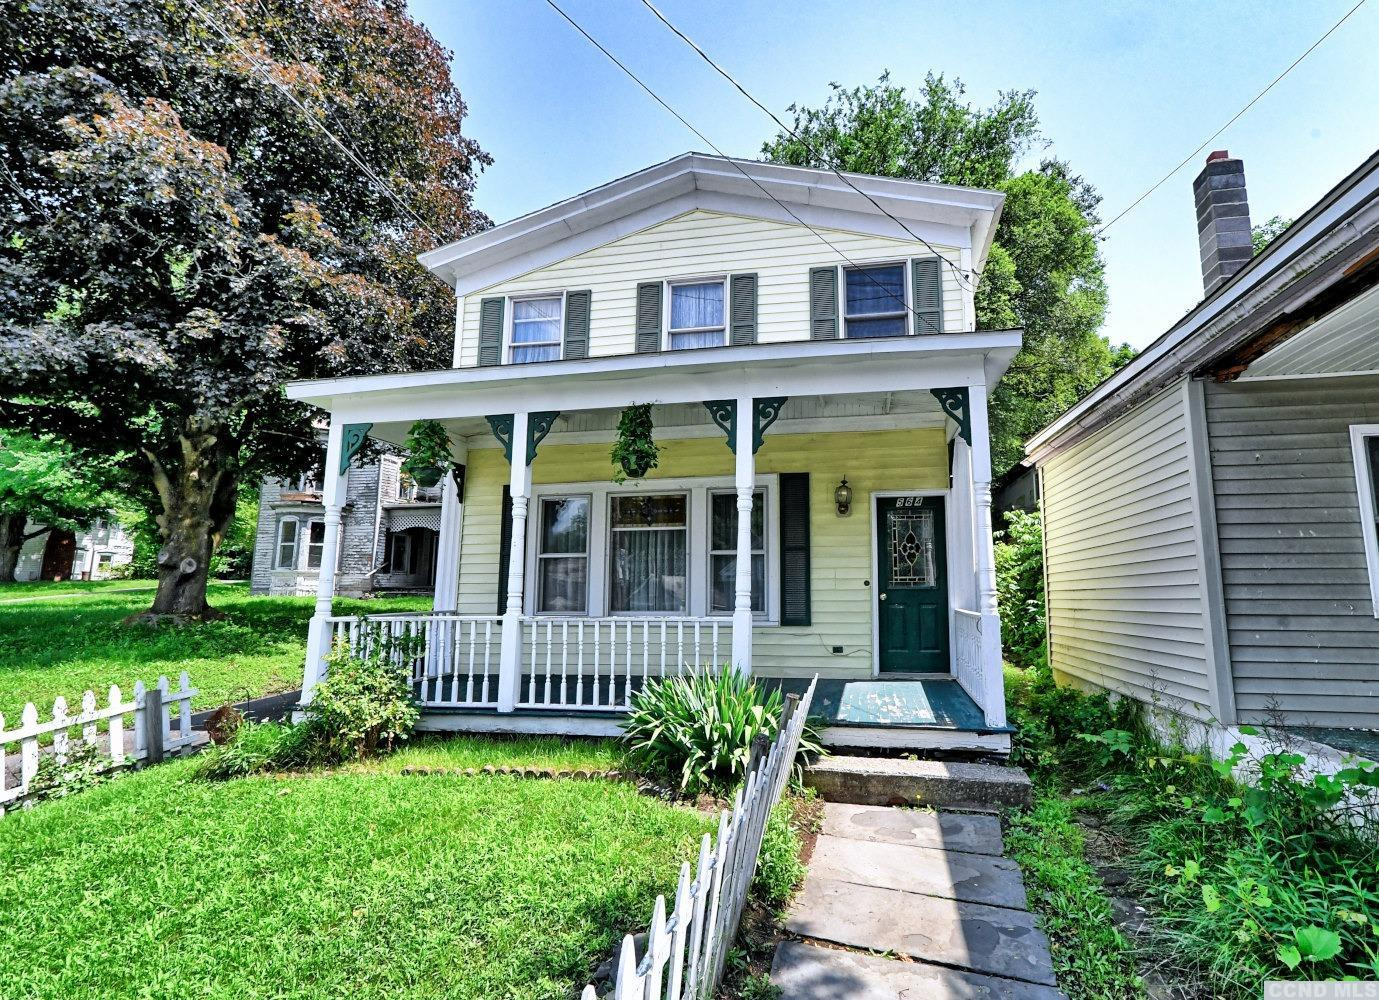 A Charming 2 Story, 3 Bedroom, 1 1/2 Bath Home in Cairo! The home features 3 to 4 bedrooms, 1 1/2 baths, a living room, a dining room, an eat-in kitchen, back enclosed porches on each floor, & a 1 1/2 car garage. There's a front covered porch, a large rear yard, & a driveway for off-street parking. It's walking distance to the local shops, eateries, the Cairo Public Library, & Angelo Canna Town Park. It's a Charming Home on Main Street in Cairo! Please view our 3D virtual tour of the home.